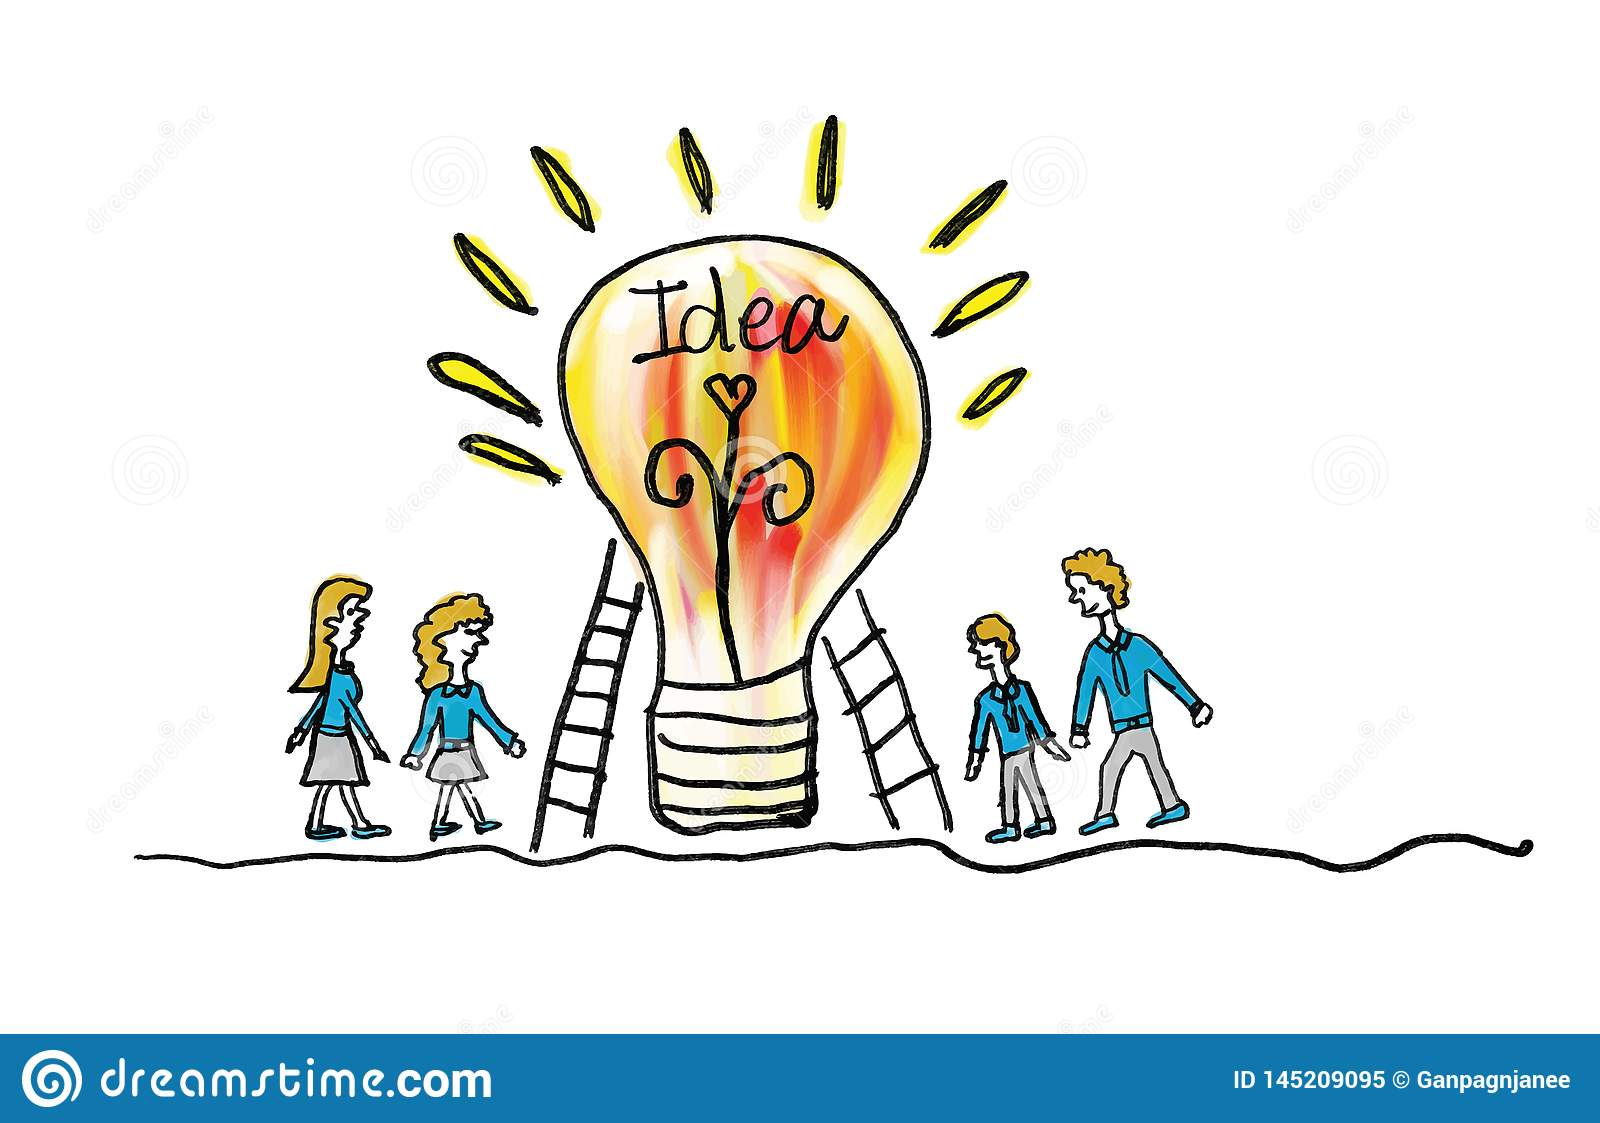 light bulb icon with business man and business woman vector illustration. creative idea concept, teamwork concept, doodle hand